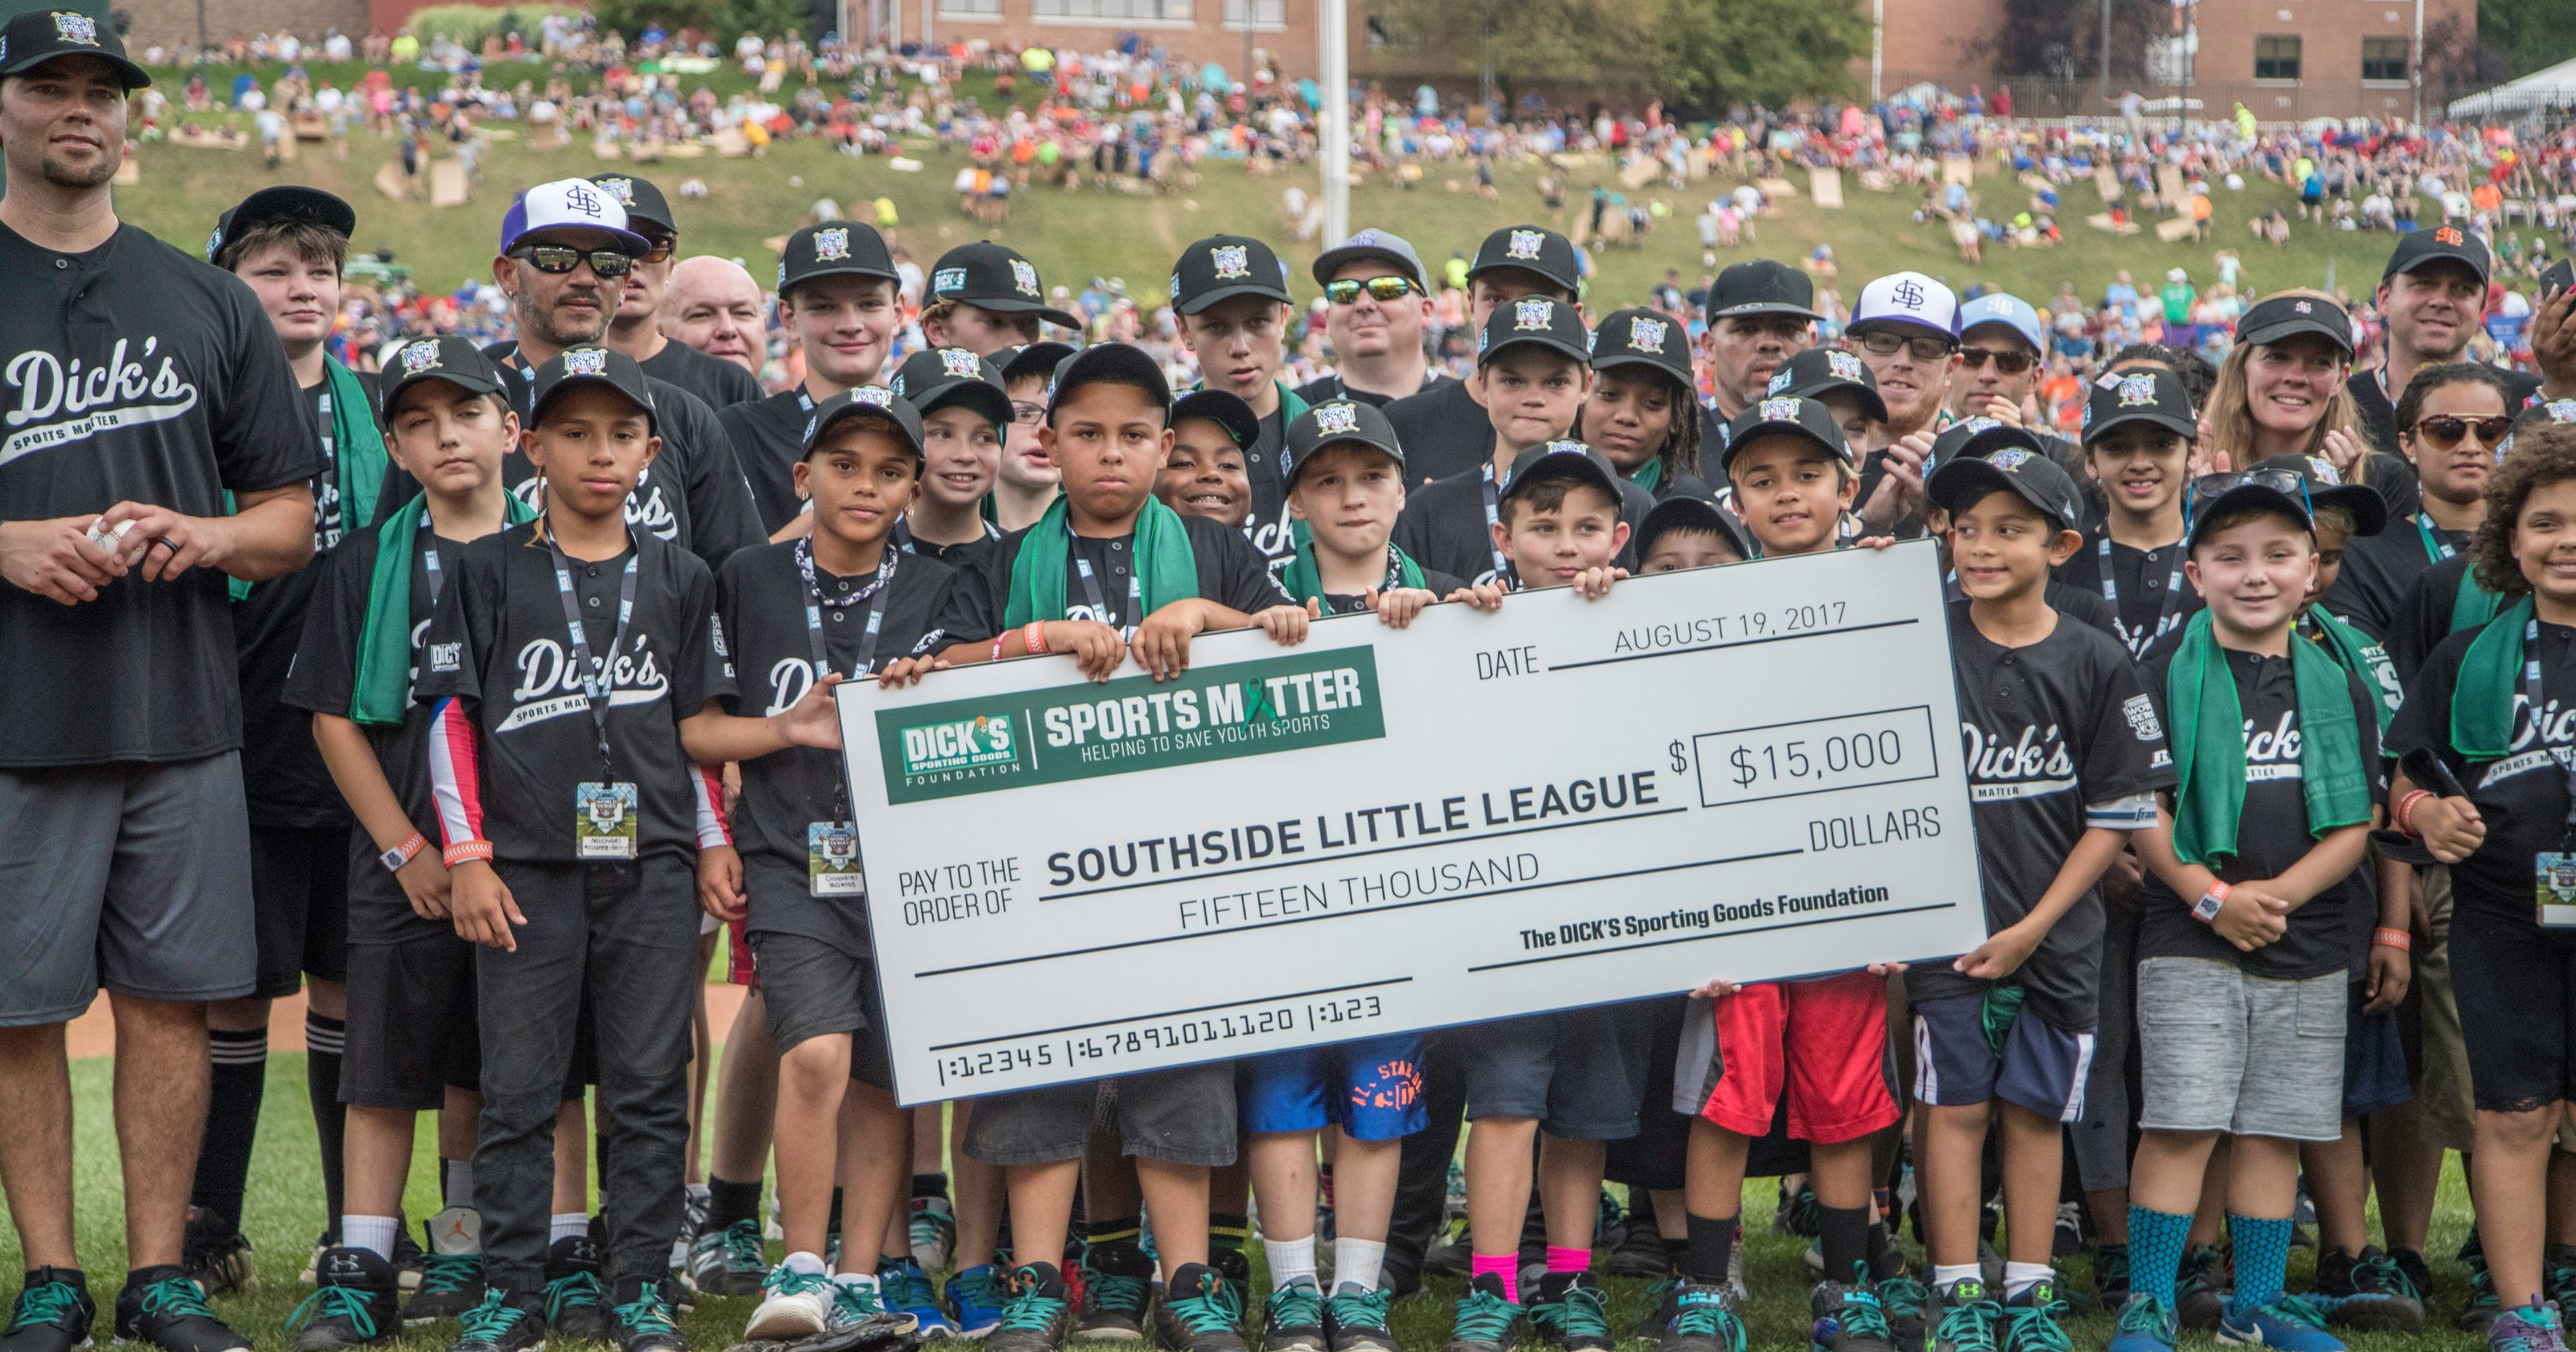 Southside Little League receives grants, day at LLWS